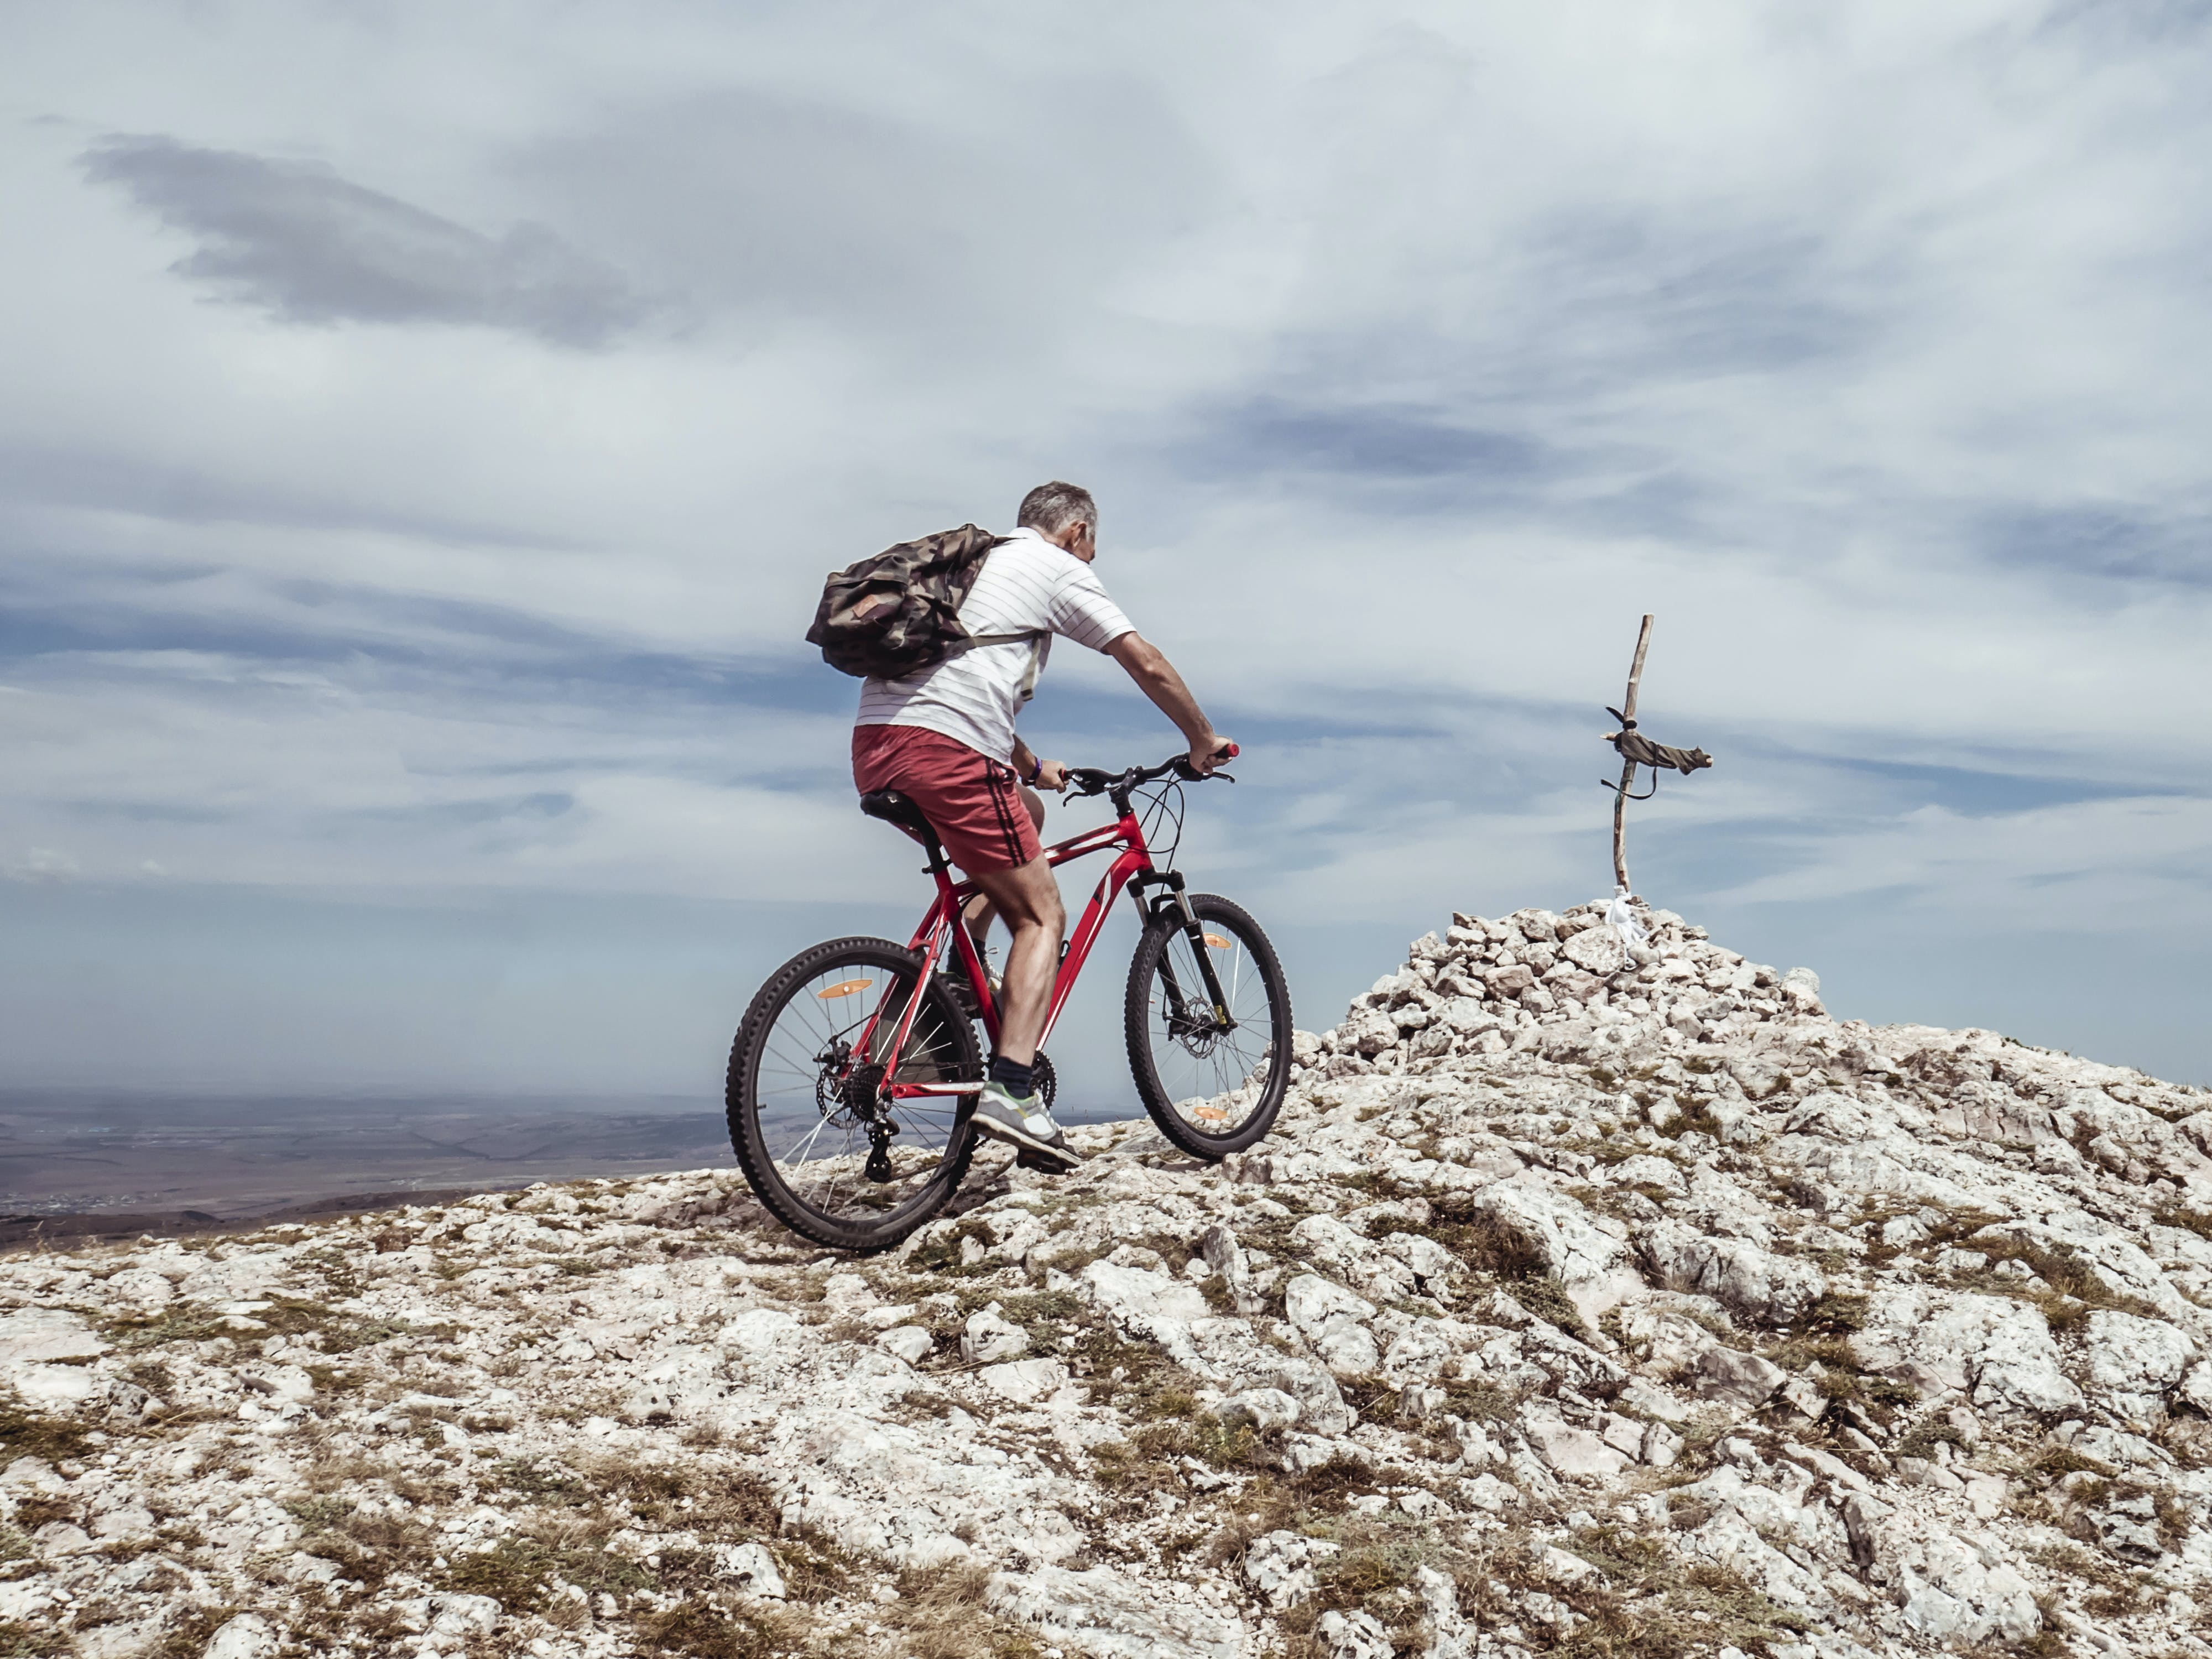 Man Riding Bicycle on Off-road